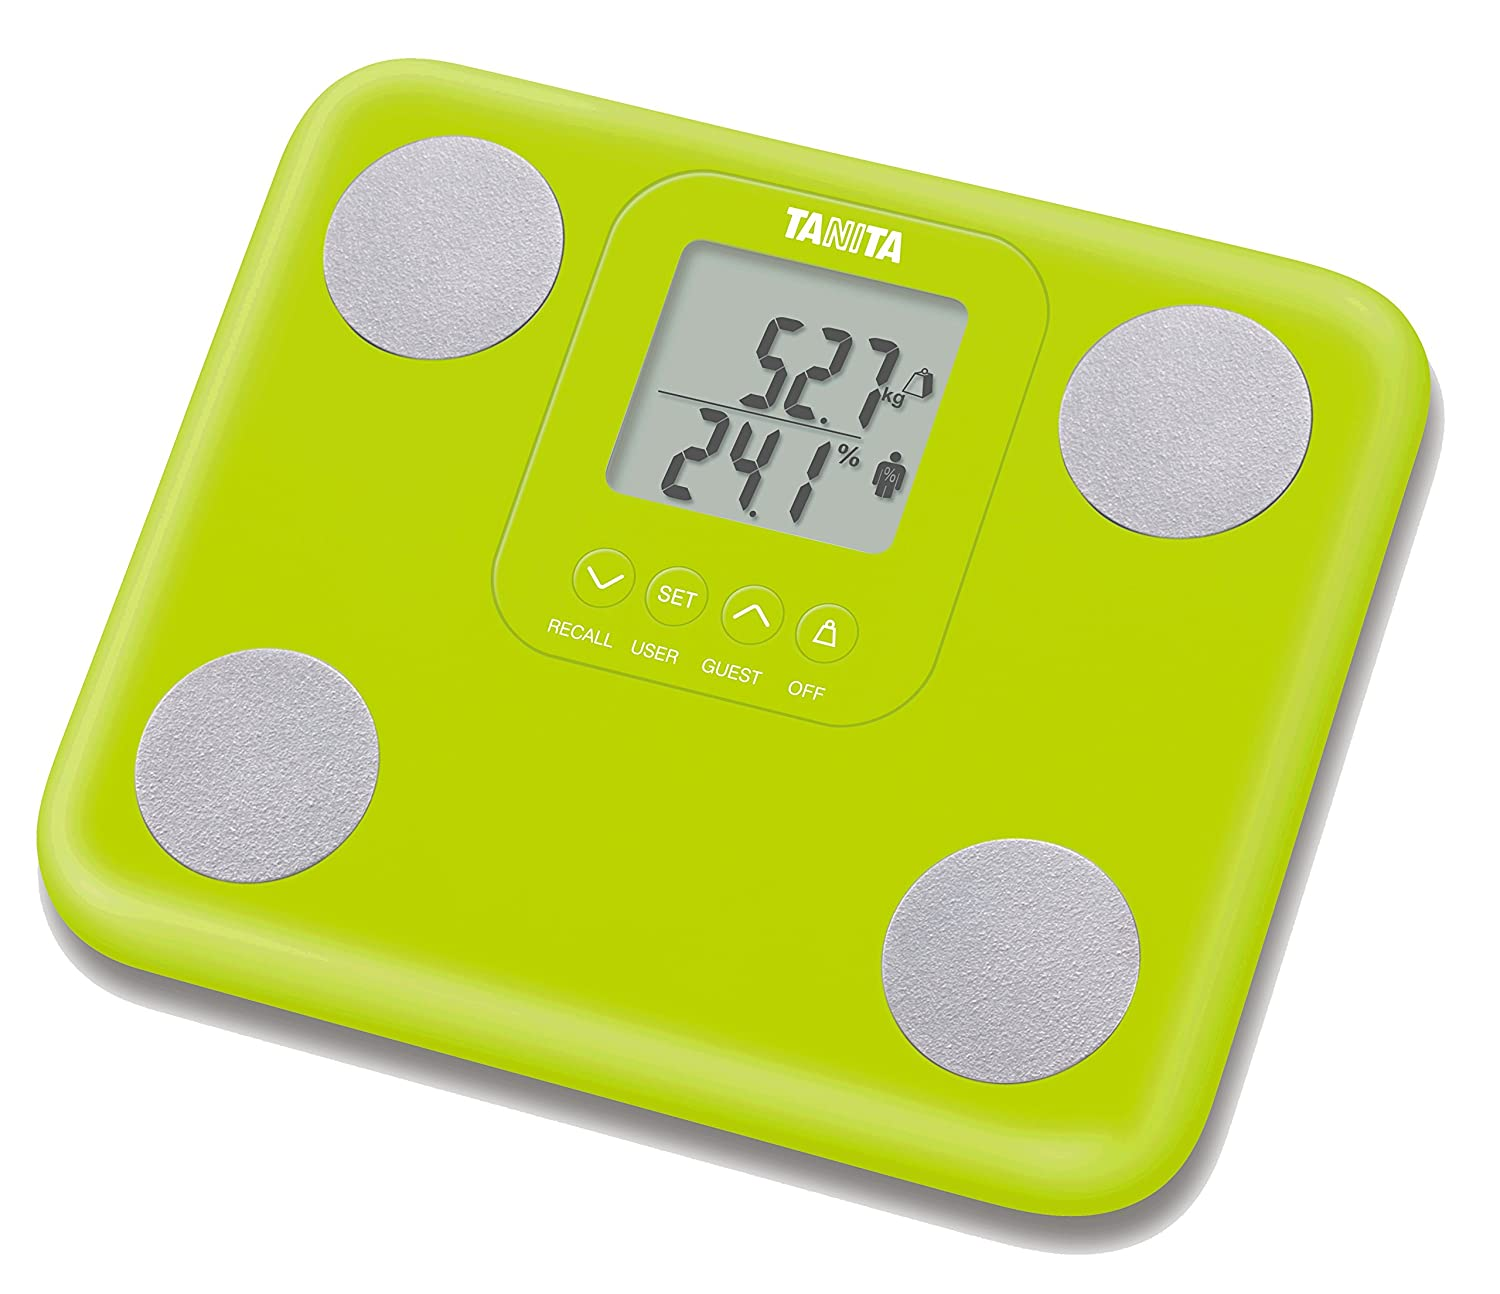 Tanita- Bc730 green Innerscan Body Composition Monitor – Green